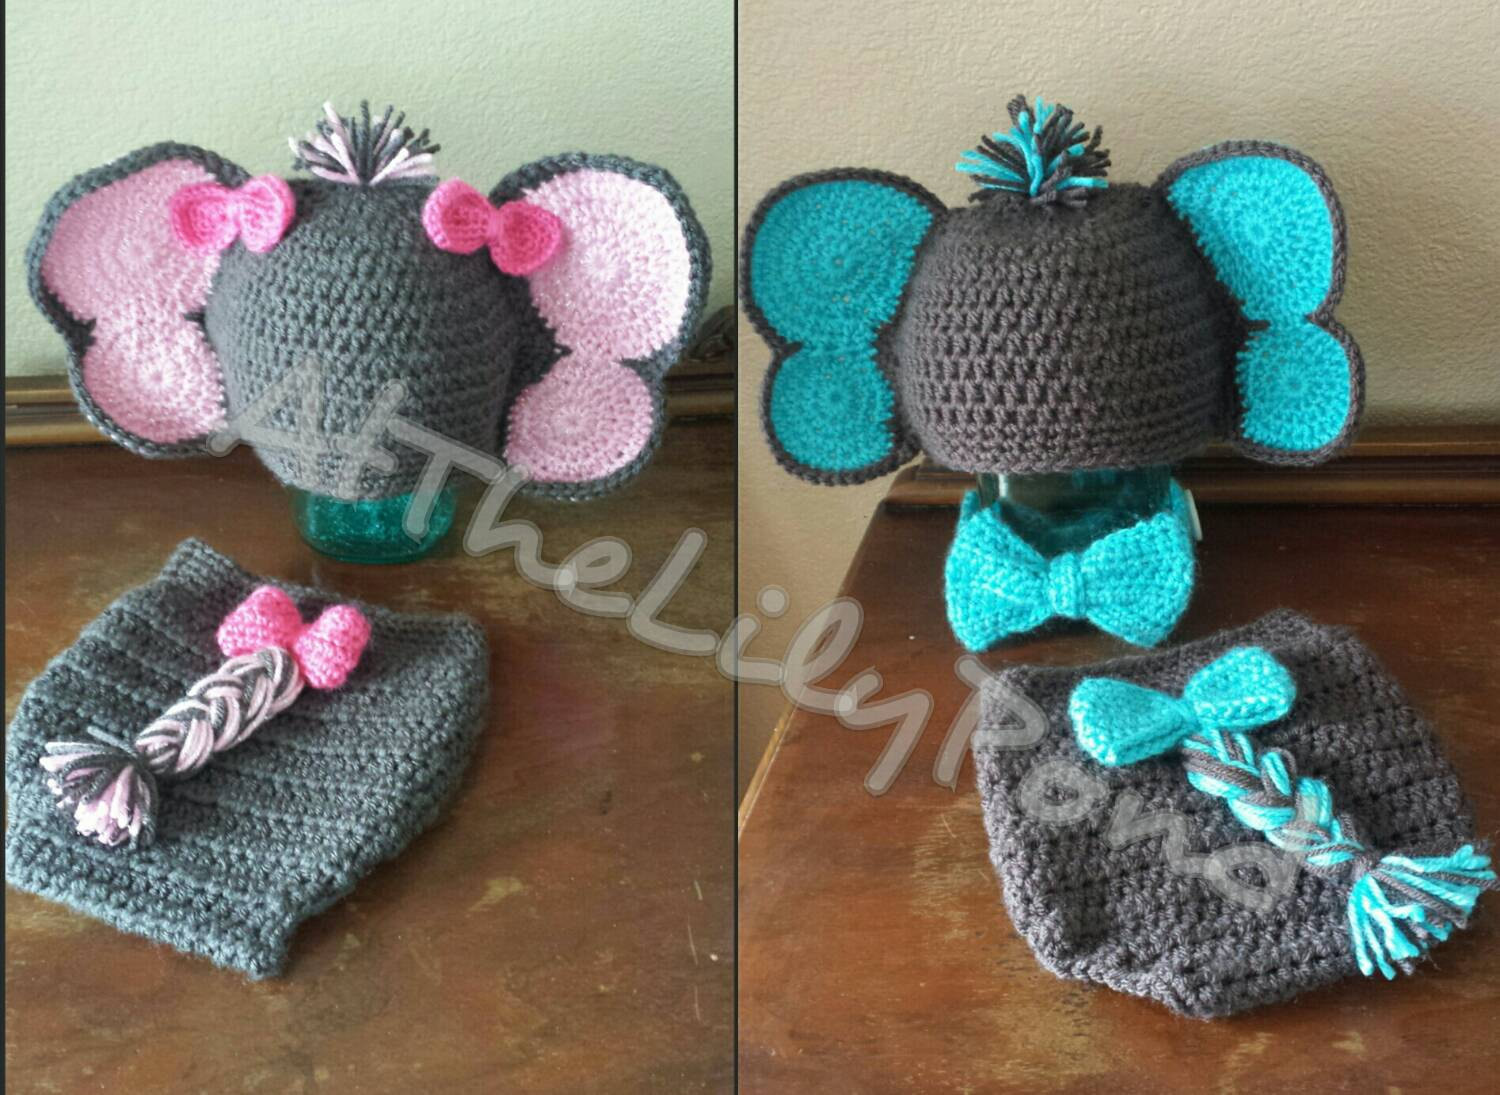 Crochet Outfit Inspirational Newborn Crochet Outfit Elephant Outfit Newborn Costume Of Gorgeous 41 Ideas Crochet Outfit